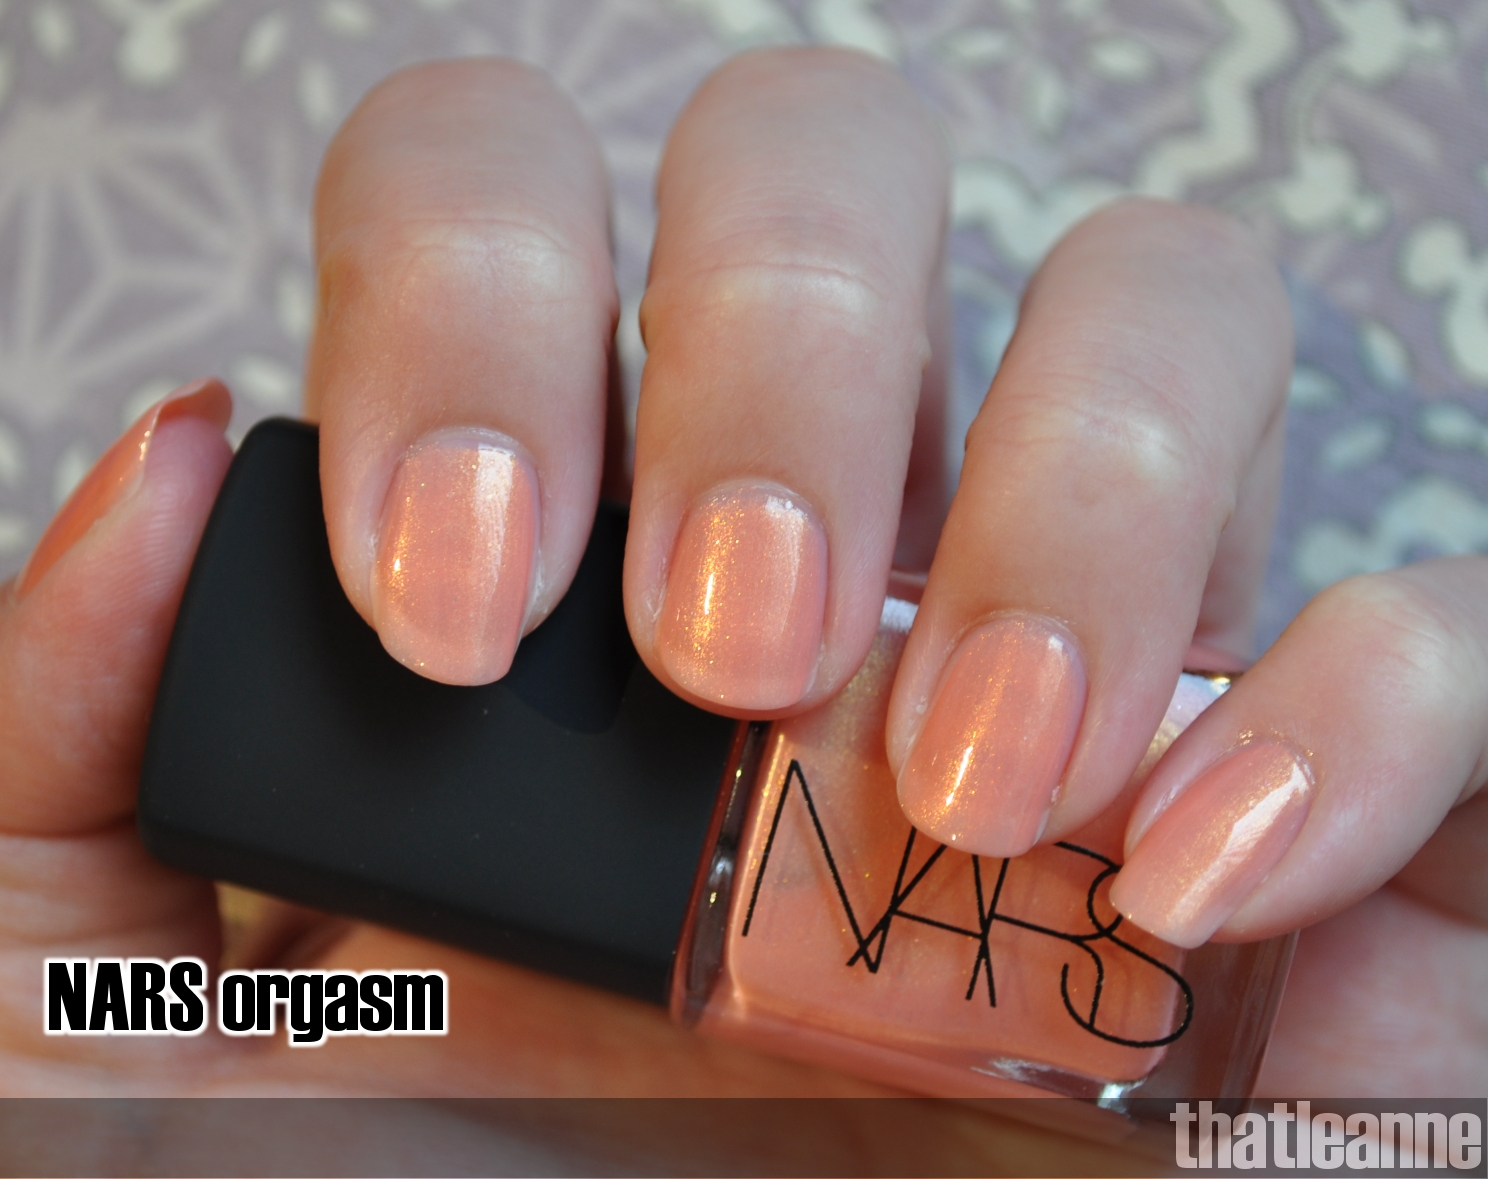 thatleanne: NARS Orgasm Nail Polish for back to work nails ;-)